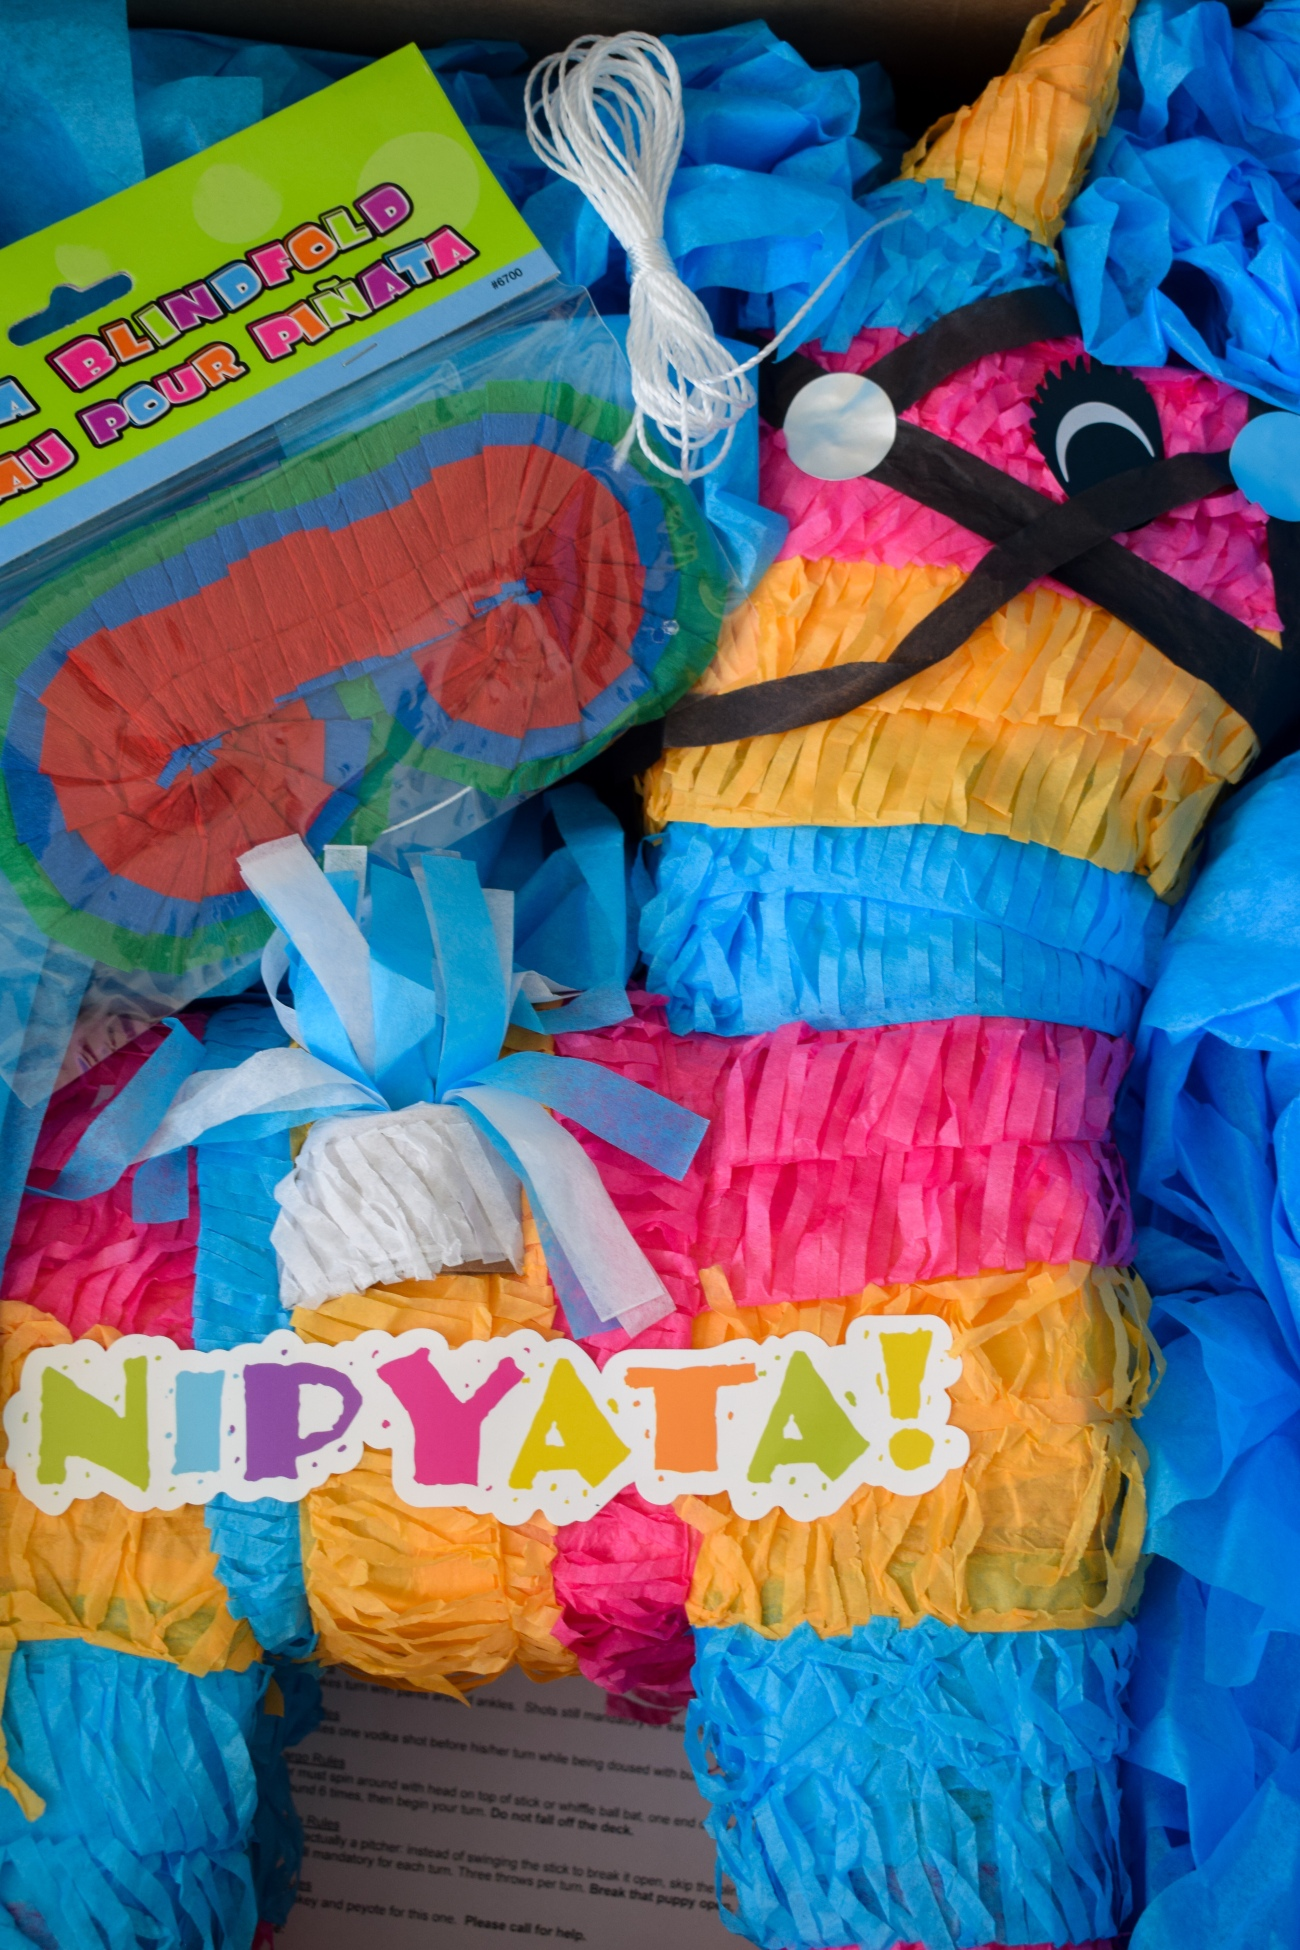 Nipyata-Booze-Alchohol-Filled-Pinata-Party-Games-Birthday-Parties-Fun-OCfoodfiend-Product-Review